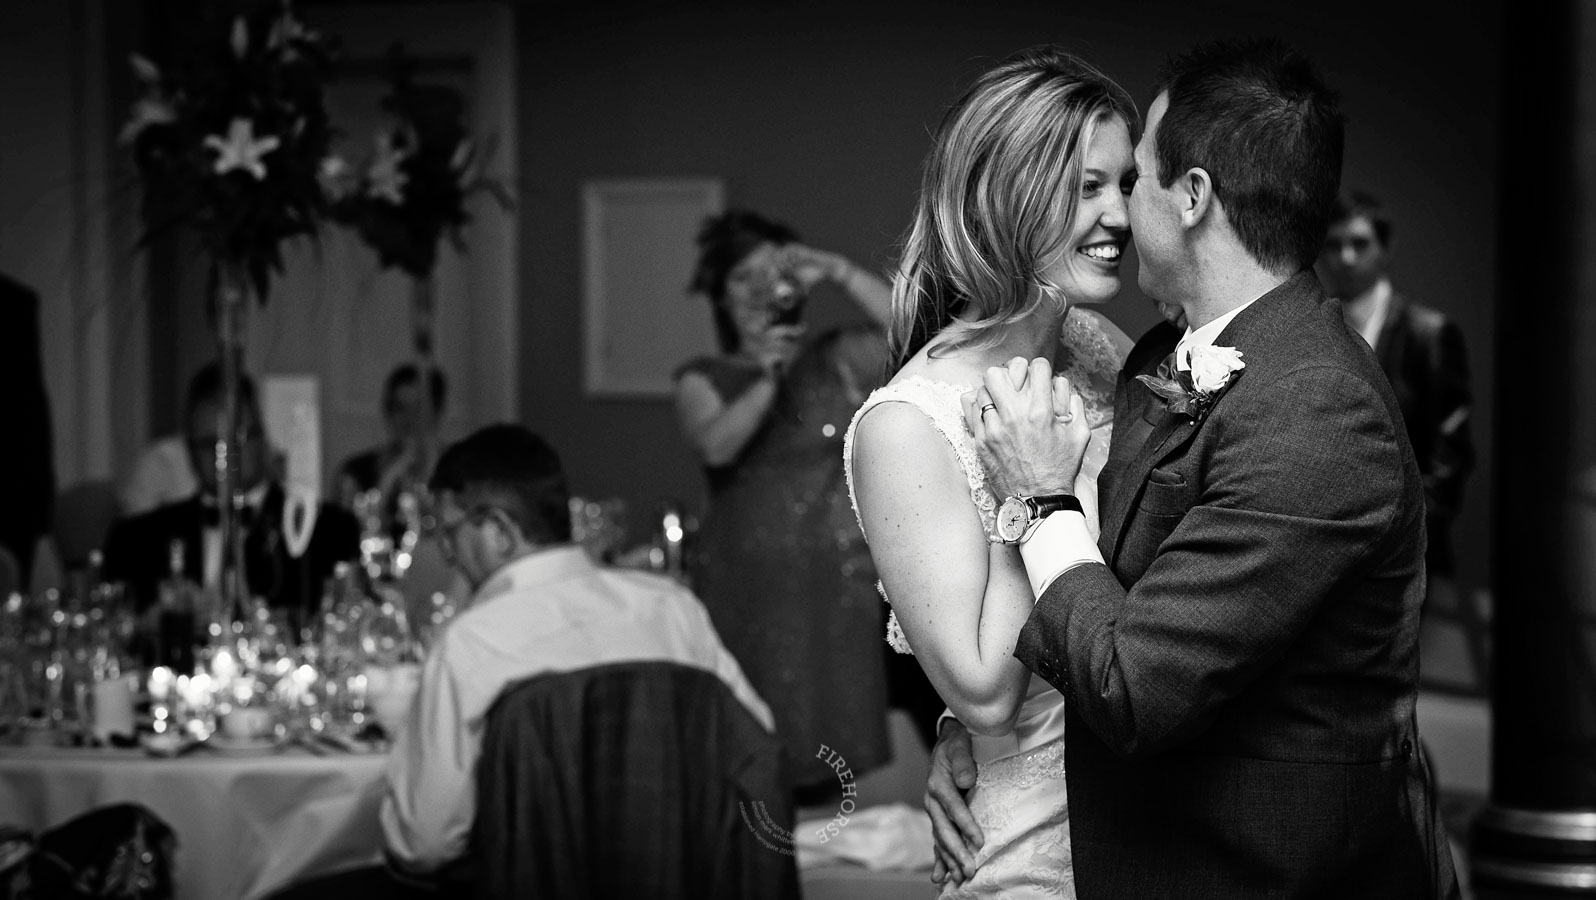 Rudding-Park-Wedding-Photography-099